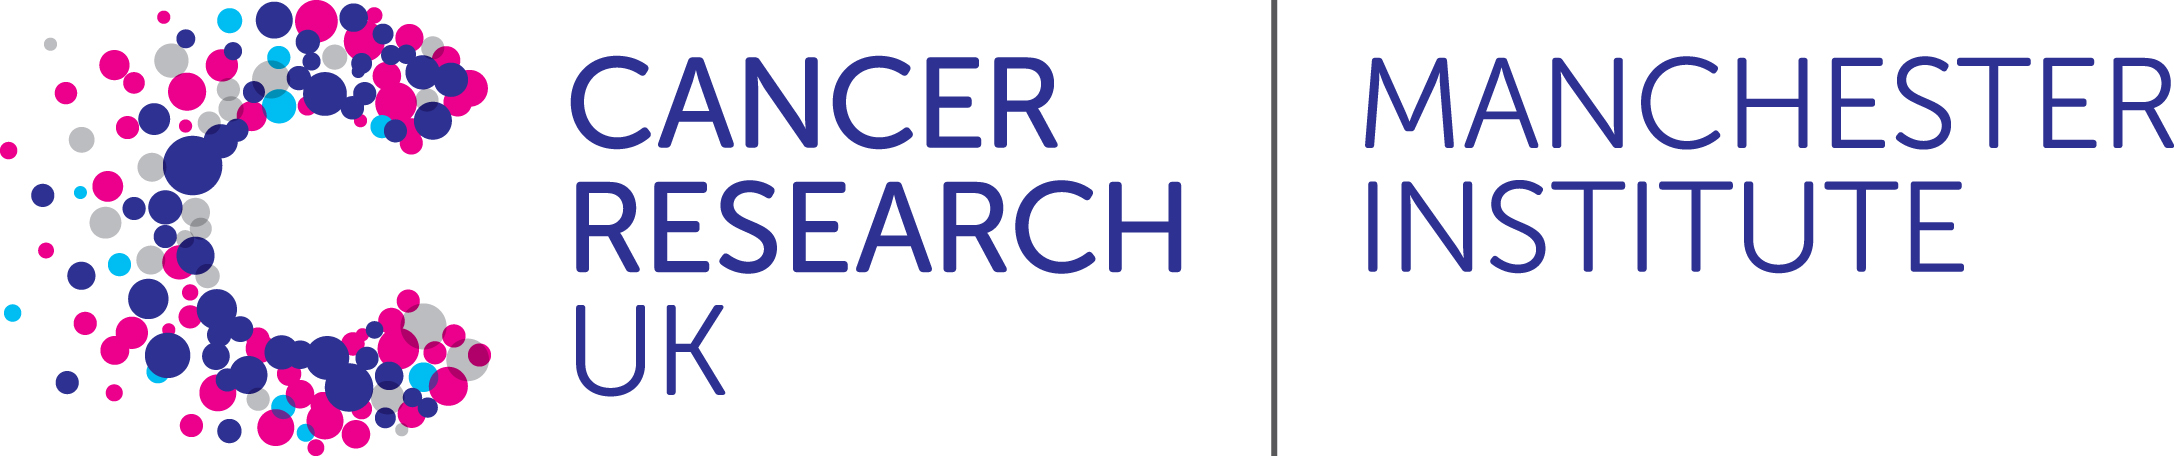 Cancer Research UK Manchester Institute